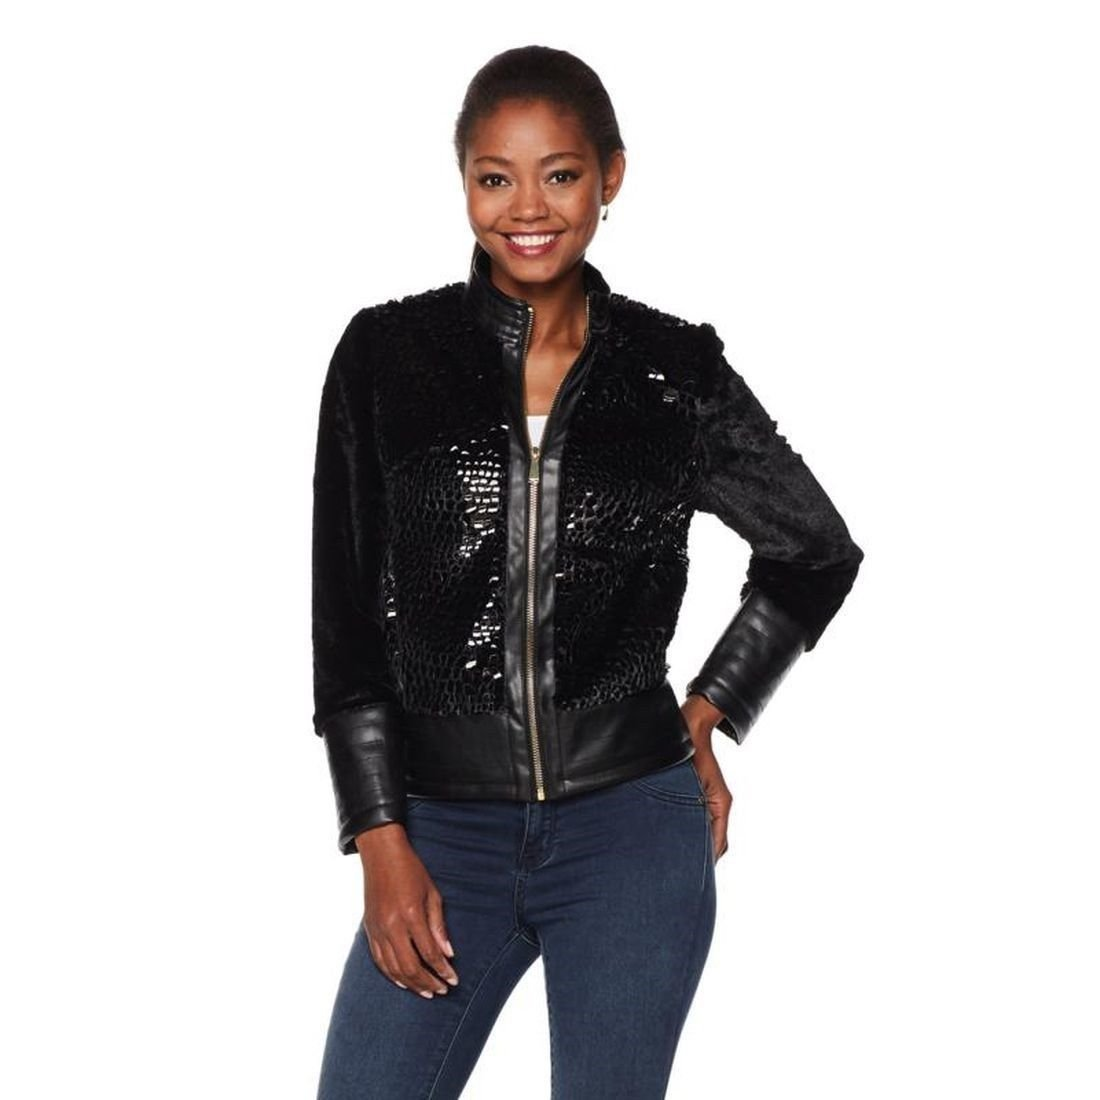 Colleen Lopez Crushed Glass Long-Sleeve Jacket Zip-Front Black 8 New 500-212